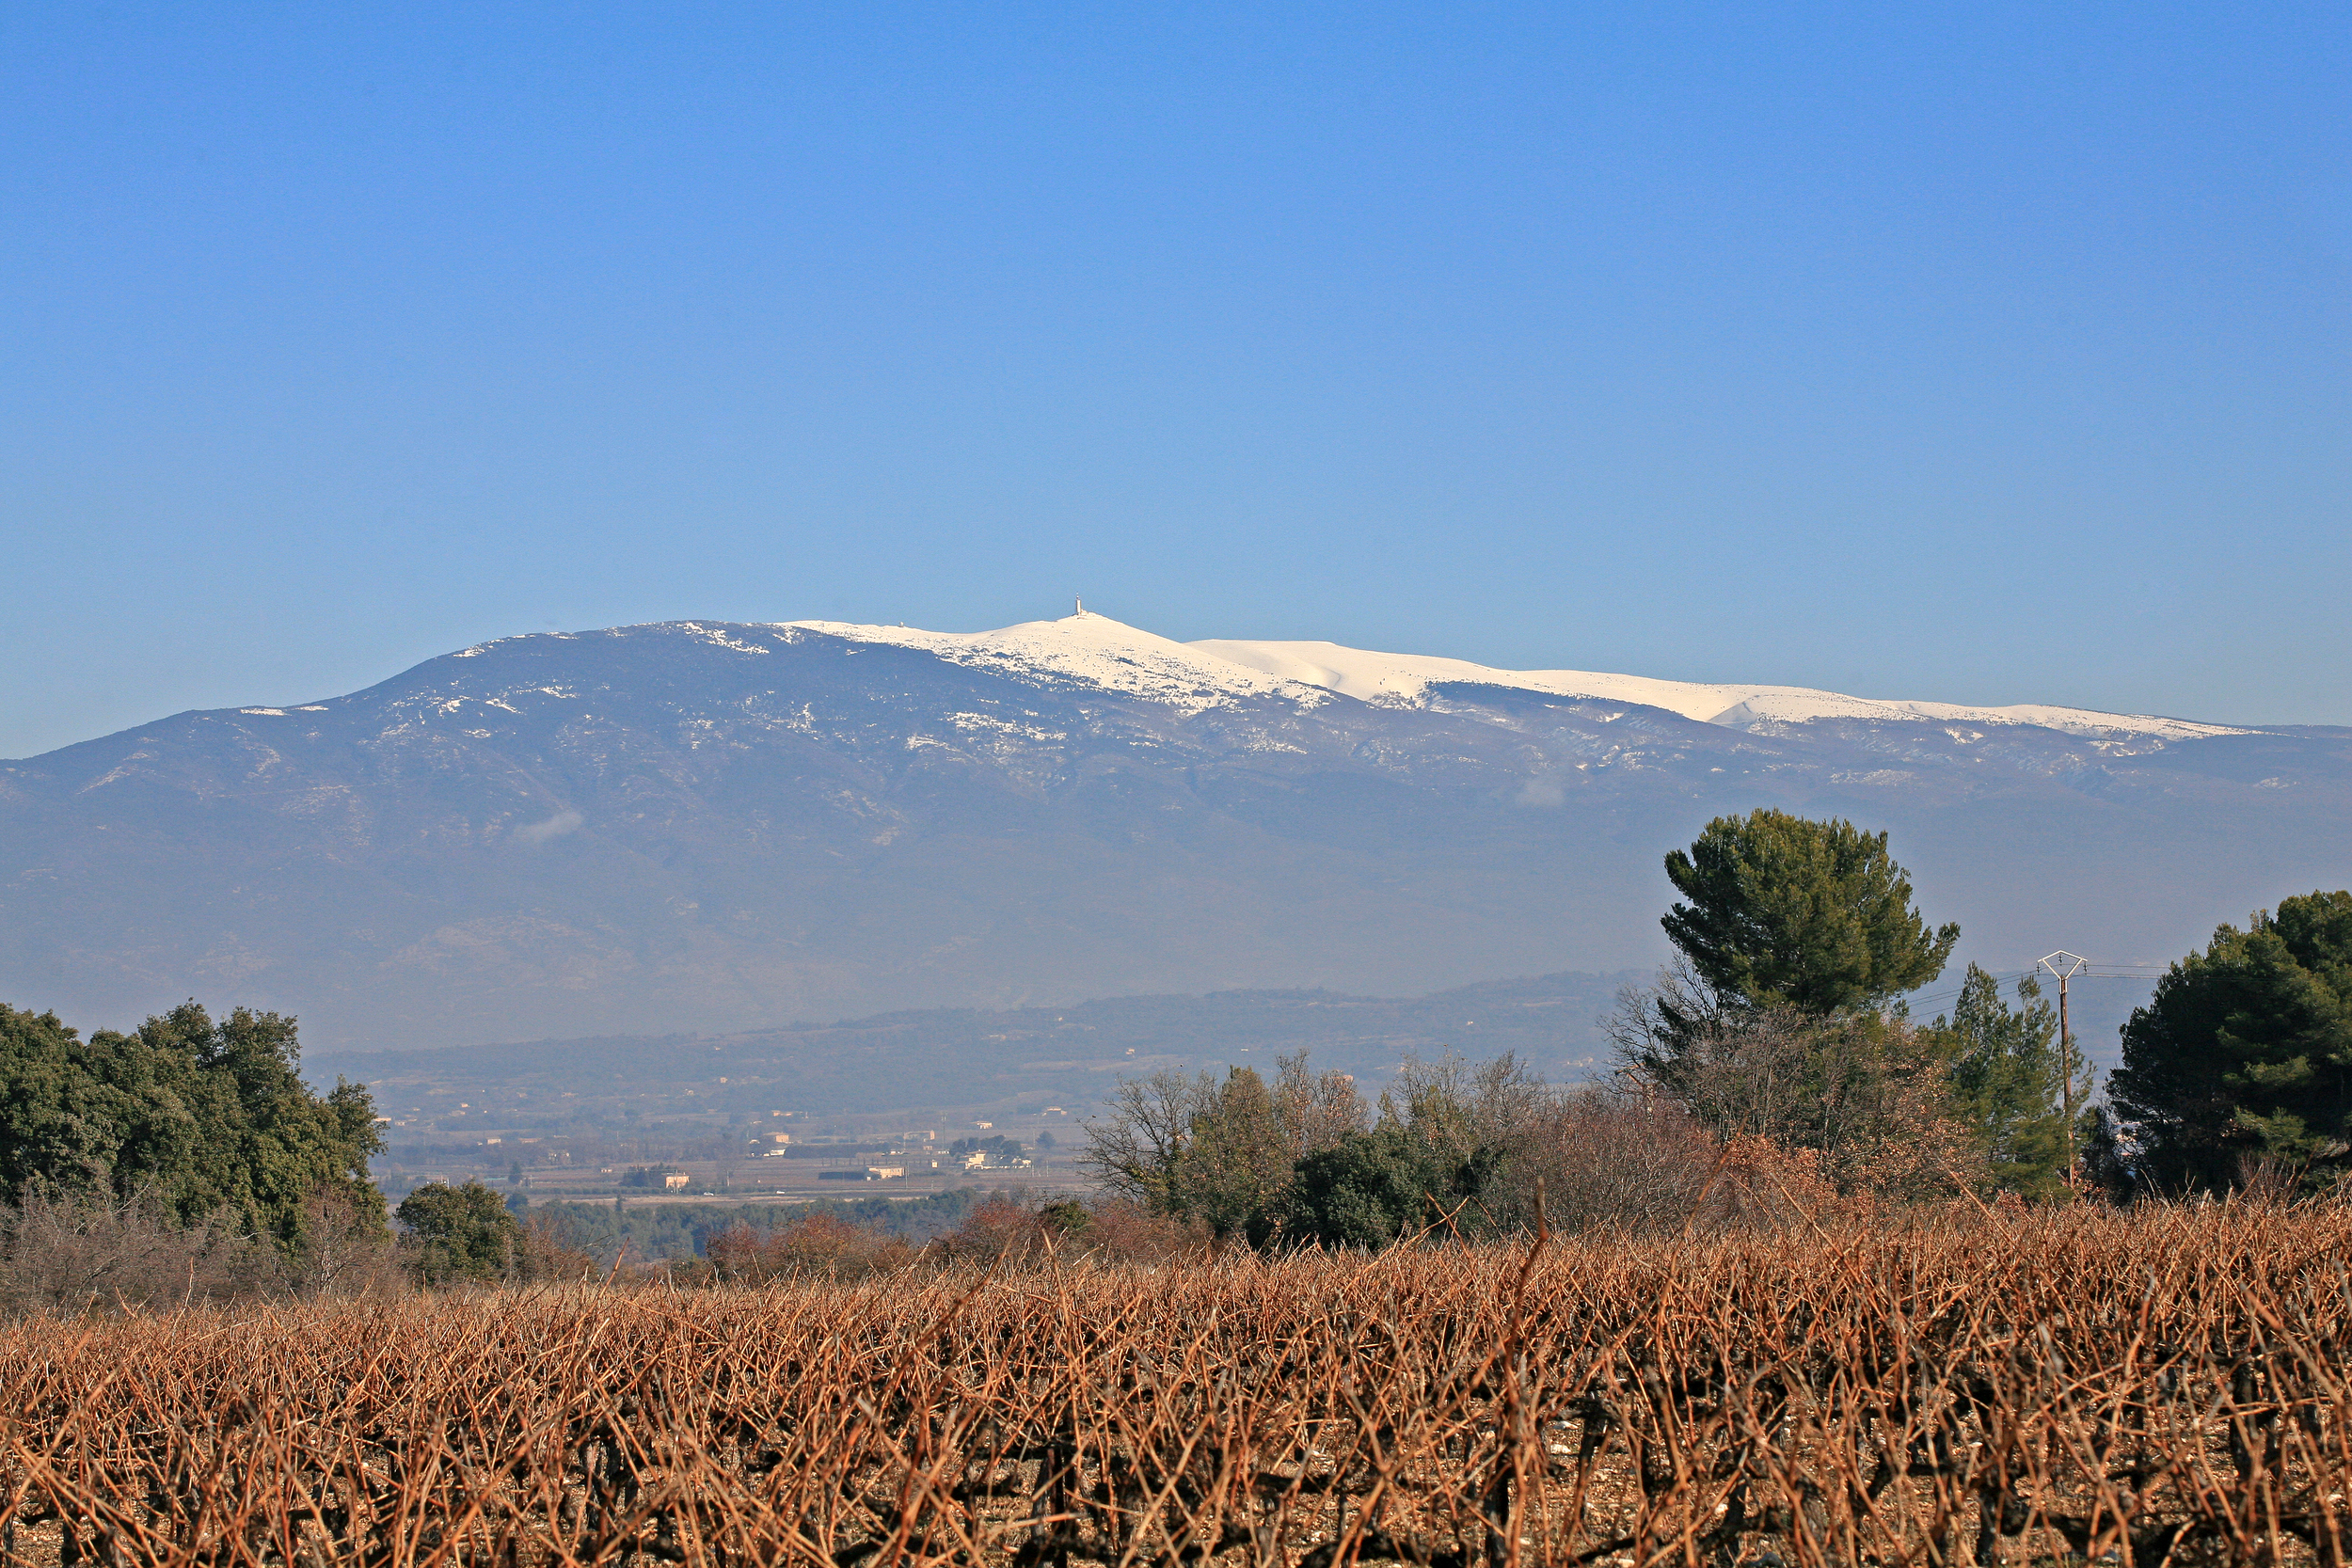 Mount Ventoux by Jean-Marc Rosier from www.rosier.pro